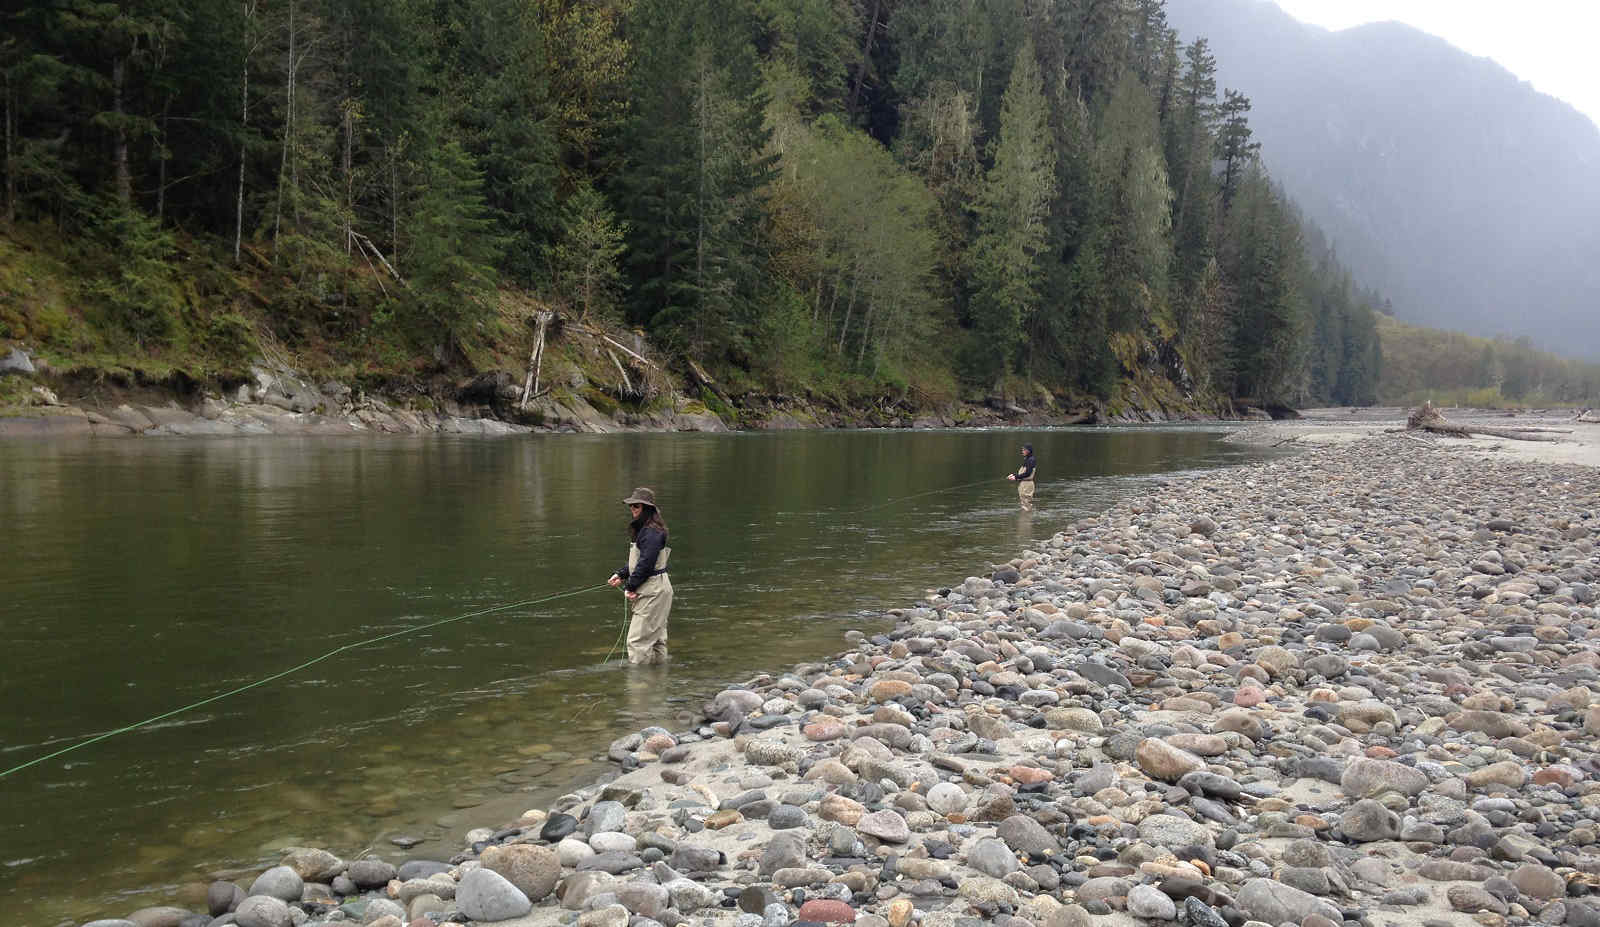 best fly fishing vancouver, top fly fishing spots vancouver, fly fishing vancouver, best fly fishing, best fly fishing spots, top fly fishing, best bc fly fishing, best fly fishing places, best trout fishing vancouver, best salmon fishing vancouver